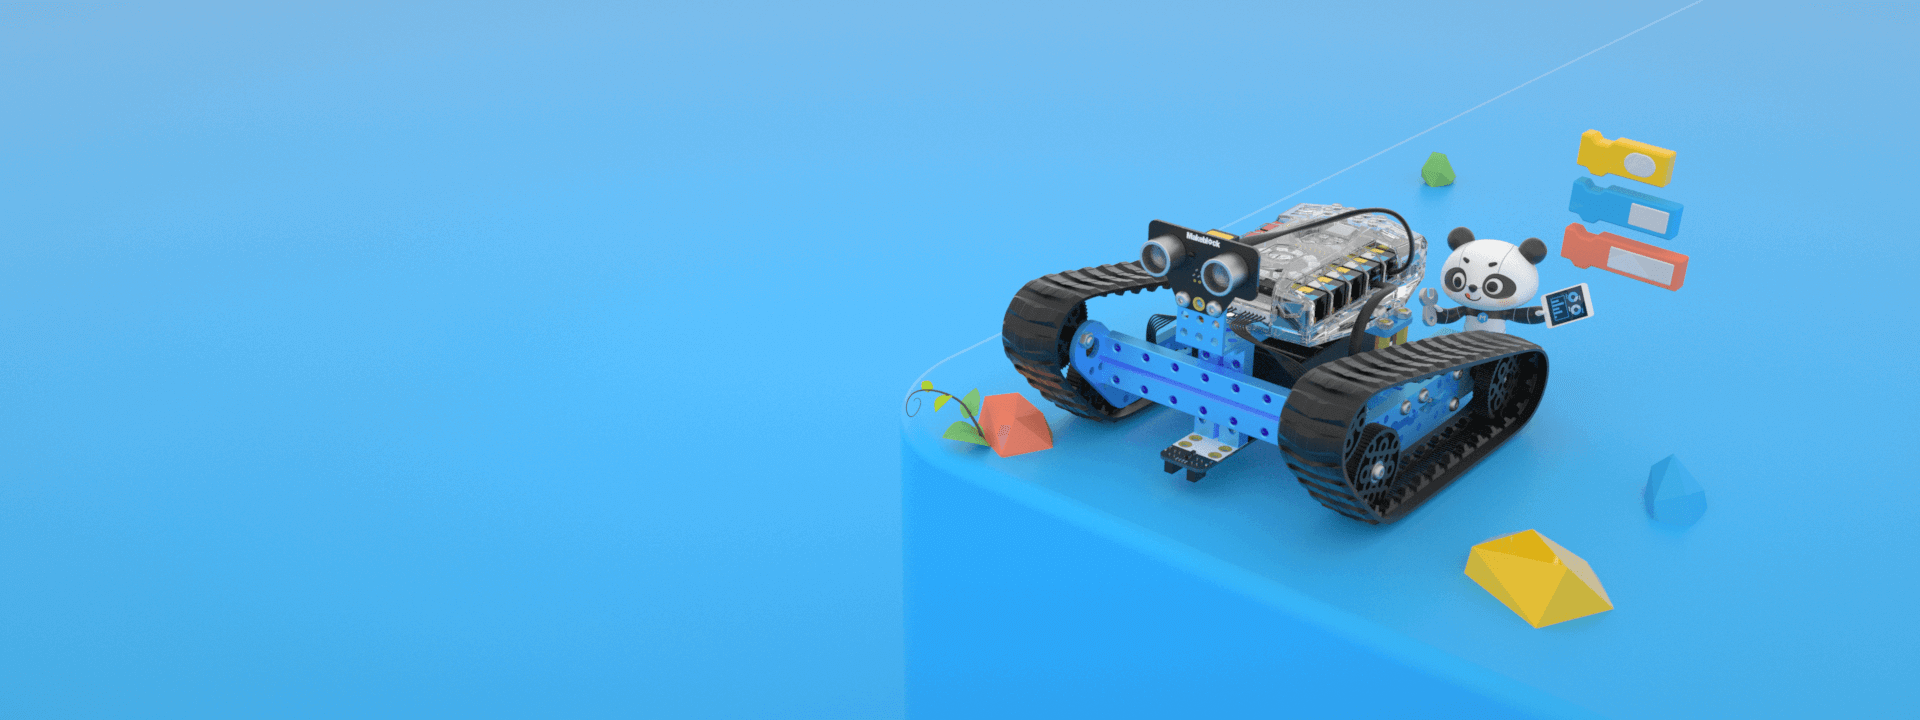 Mbot Ranger Makeblock Global Steam Education Solution Provider Rover Remote Starter Diagram Allows Children To Receive In A Simple And Fun Way Also Gets Started On Robot Programming Advancing With Them